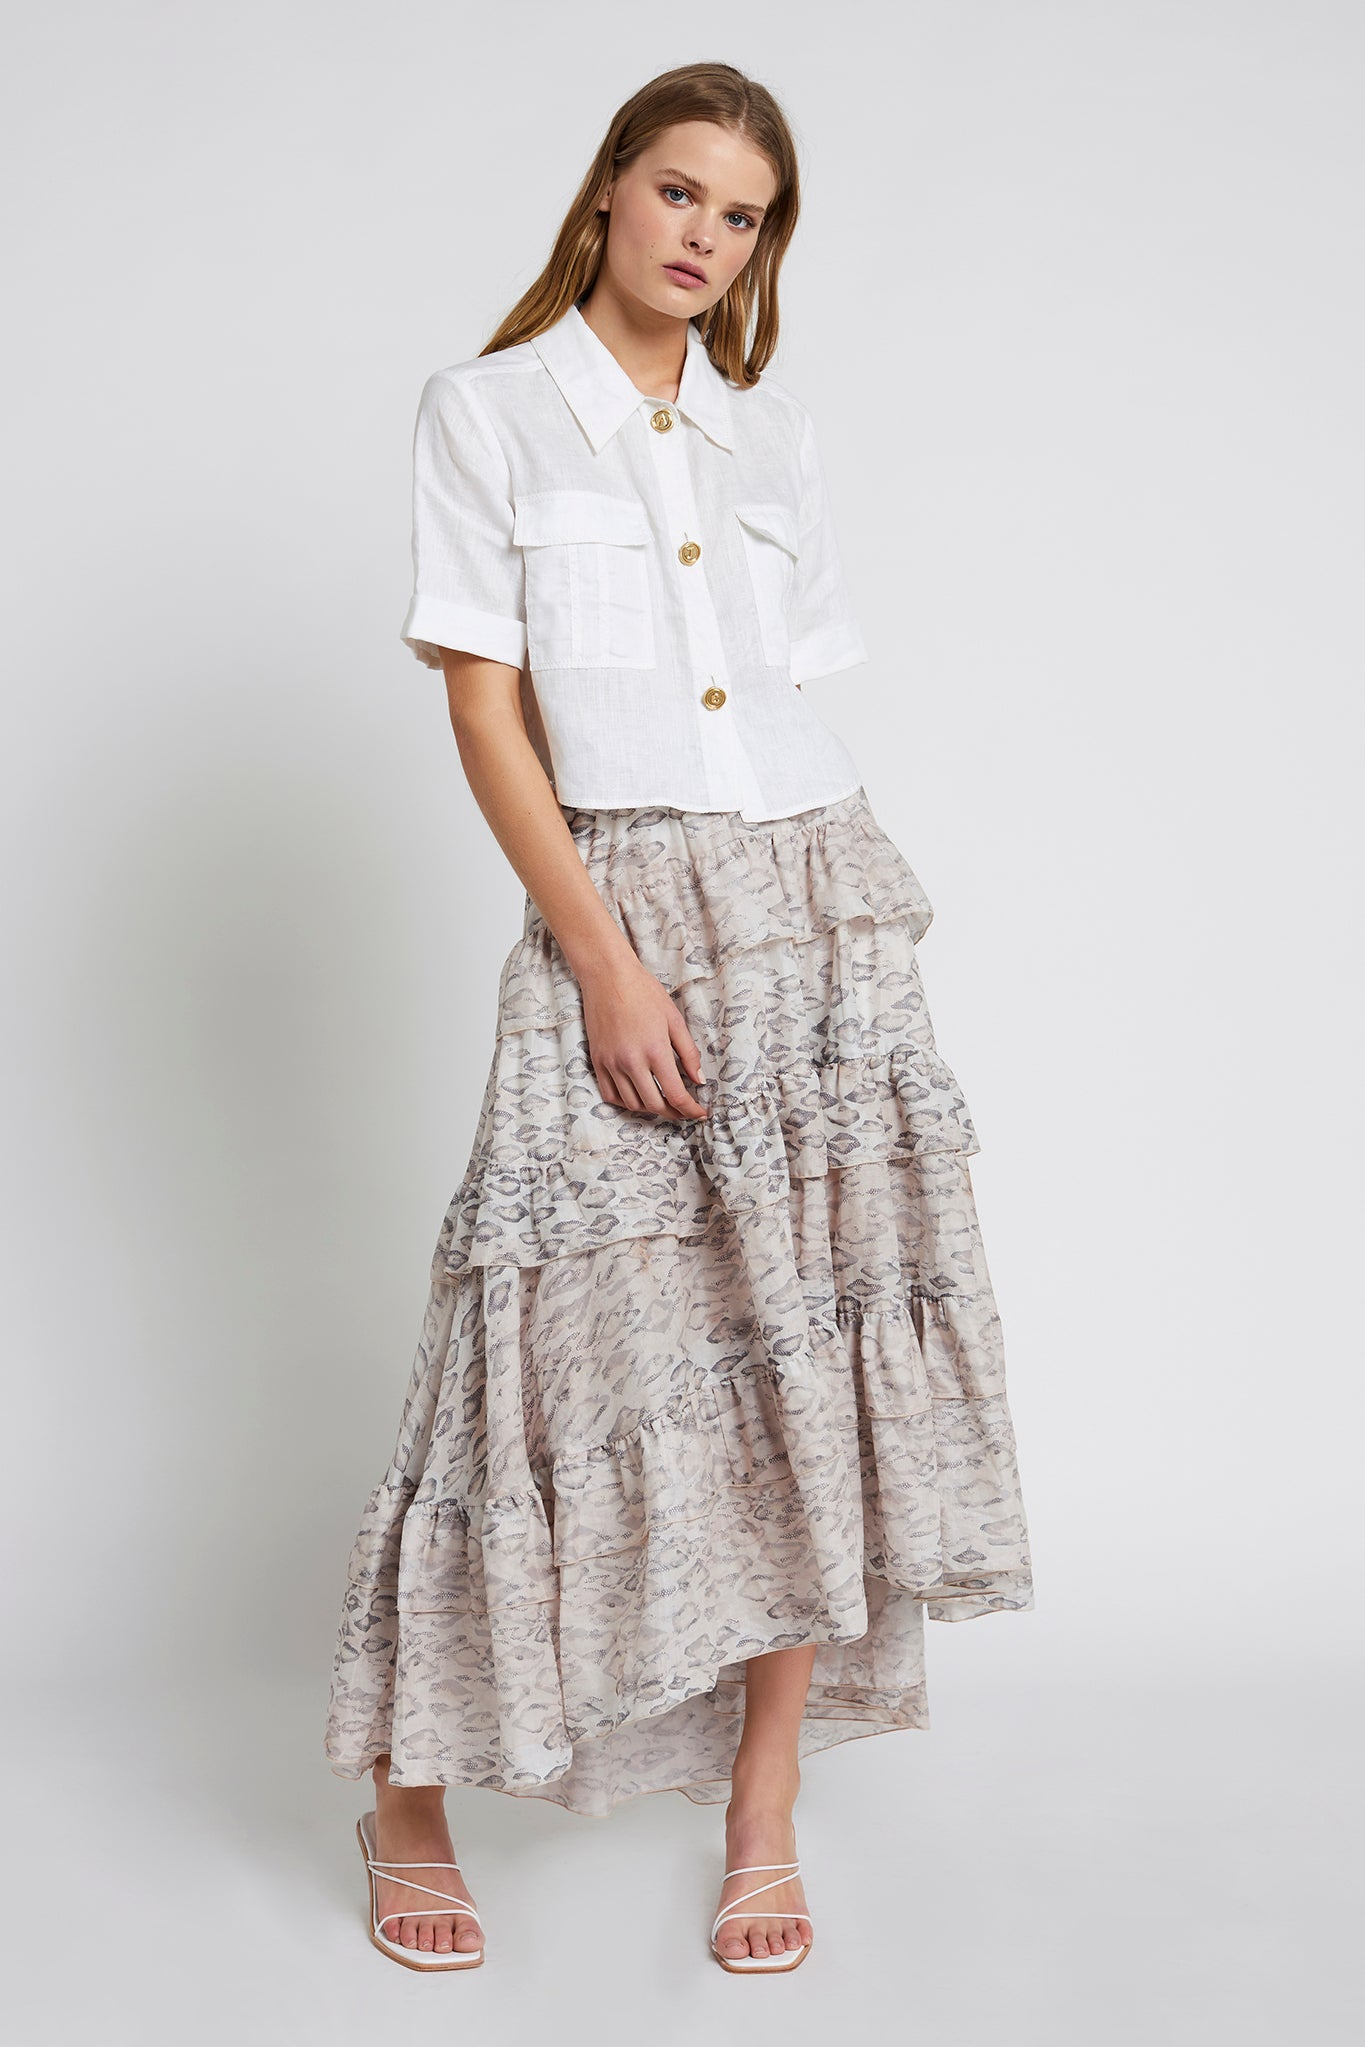 Sorocco Maxi Skirt Outfit View